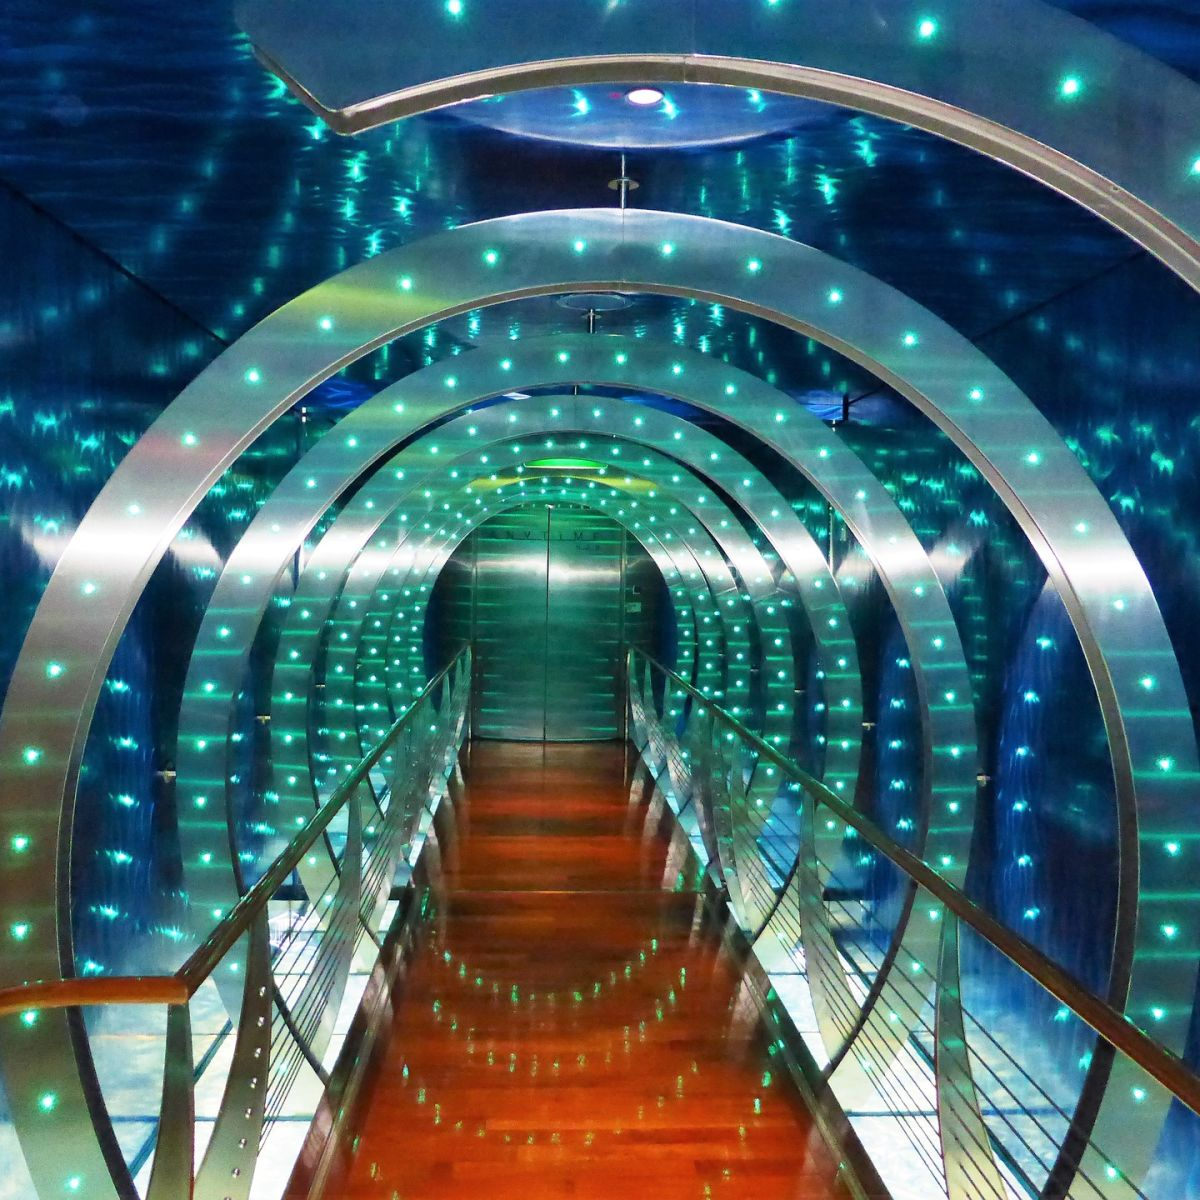 Tunnel, led lights, lighting, psychedelic, science fiction